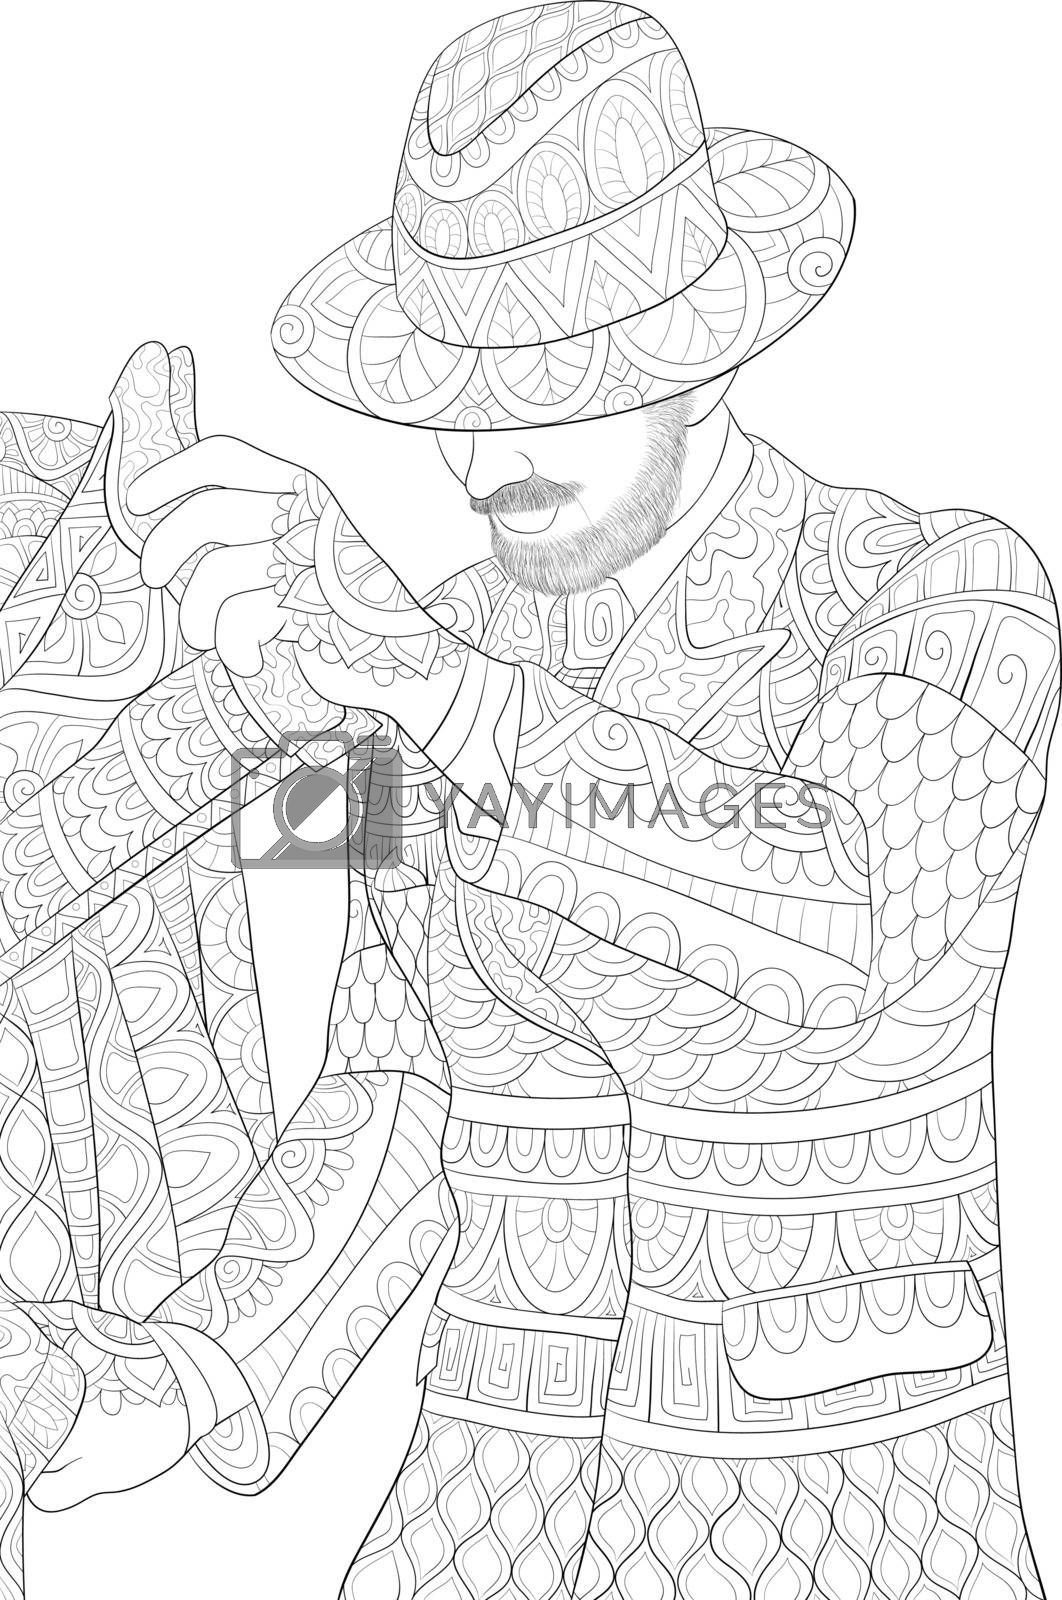 A cute man wearing a cap with ornaments image for relaxing activity.Coloring book,page for adults.Zen art style illustration for print.Poster design.